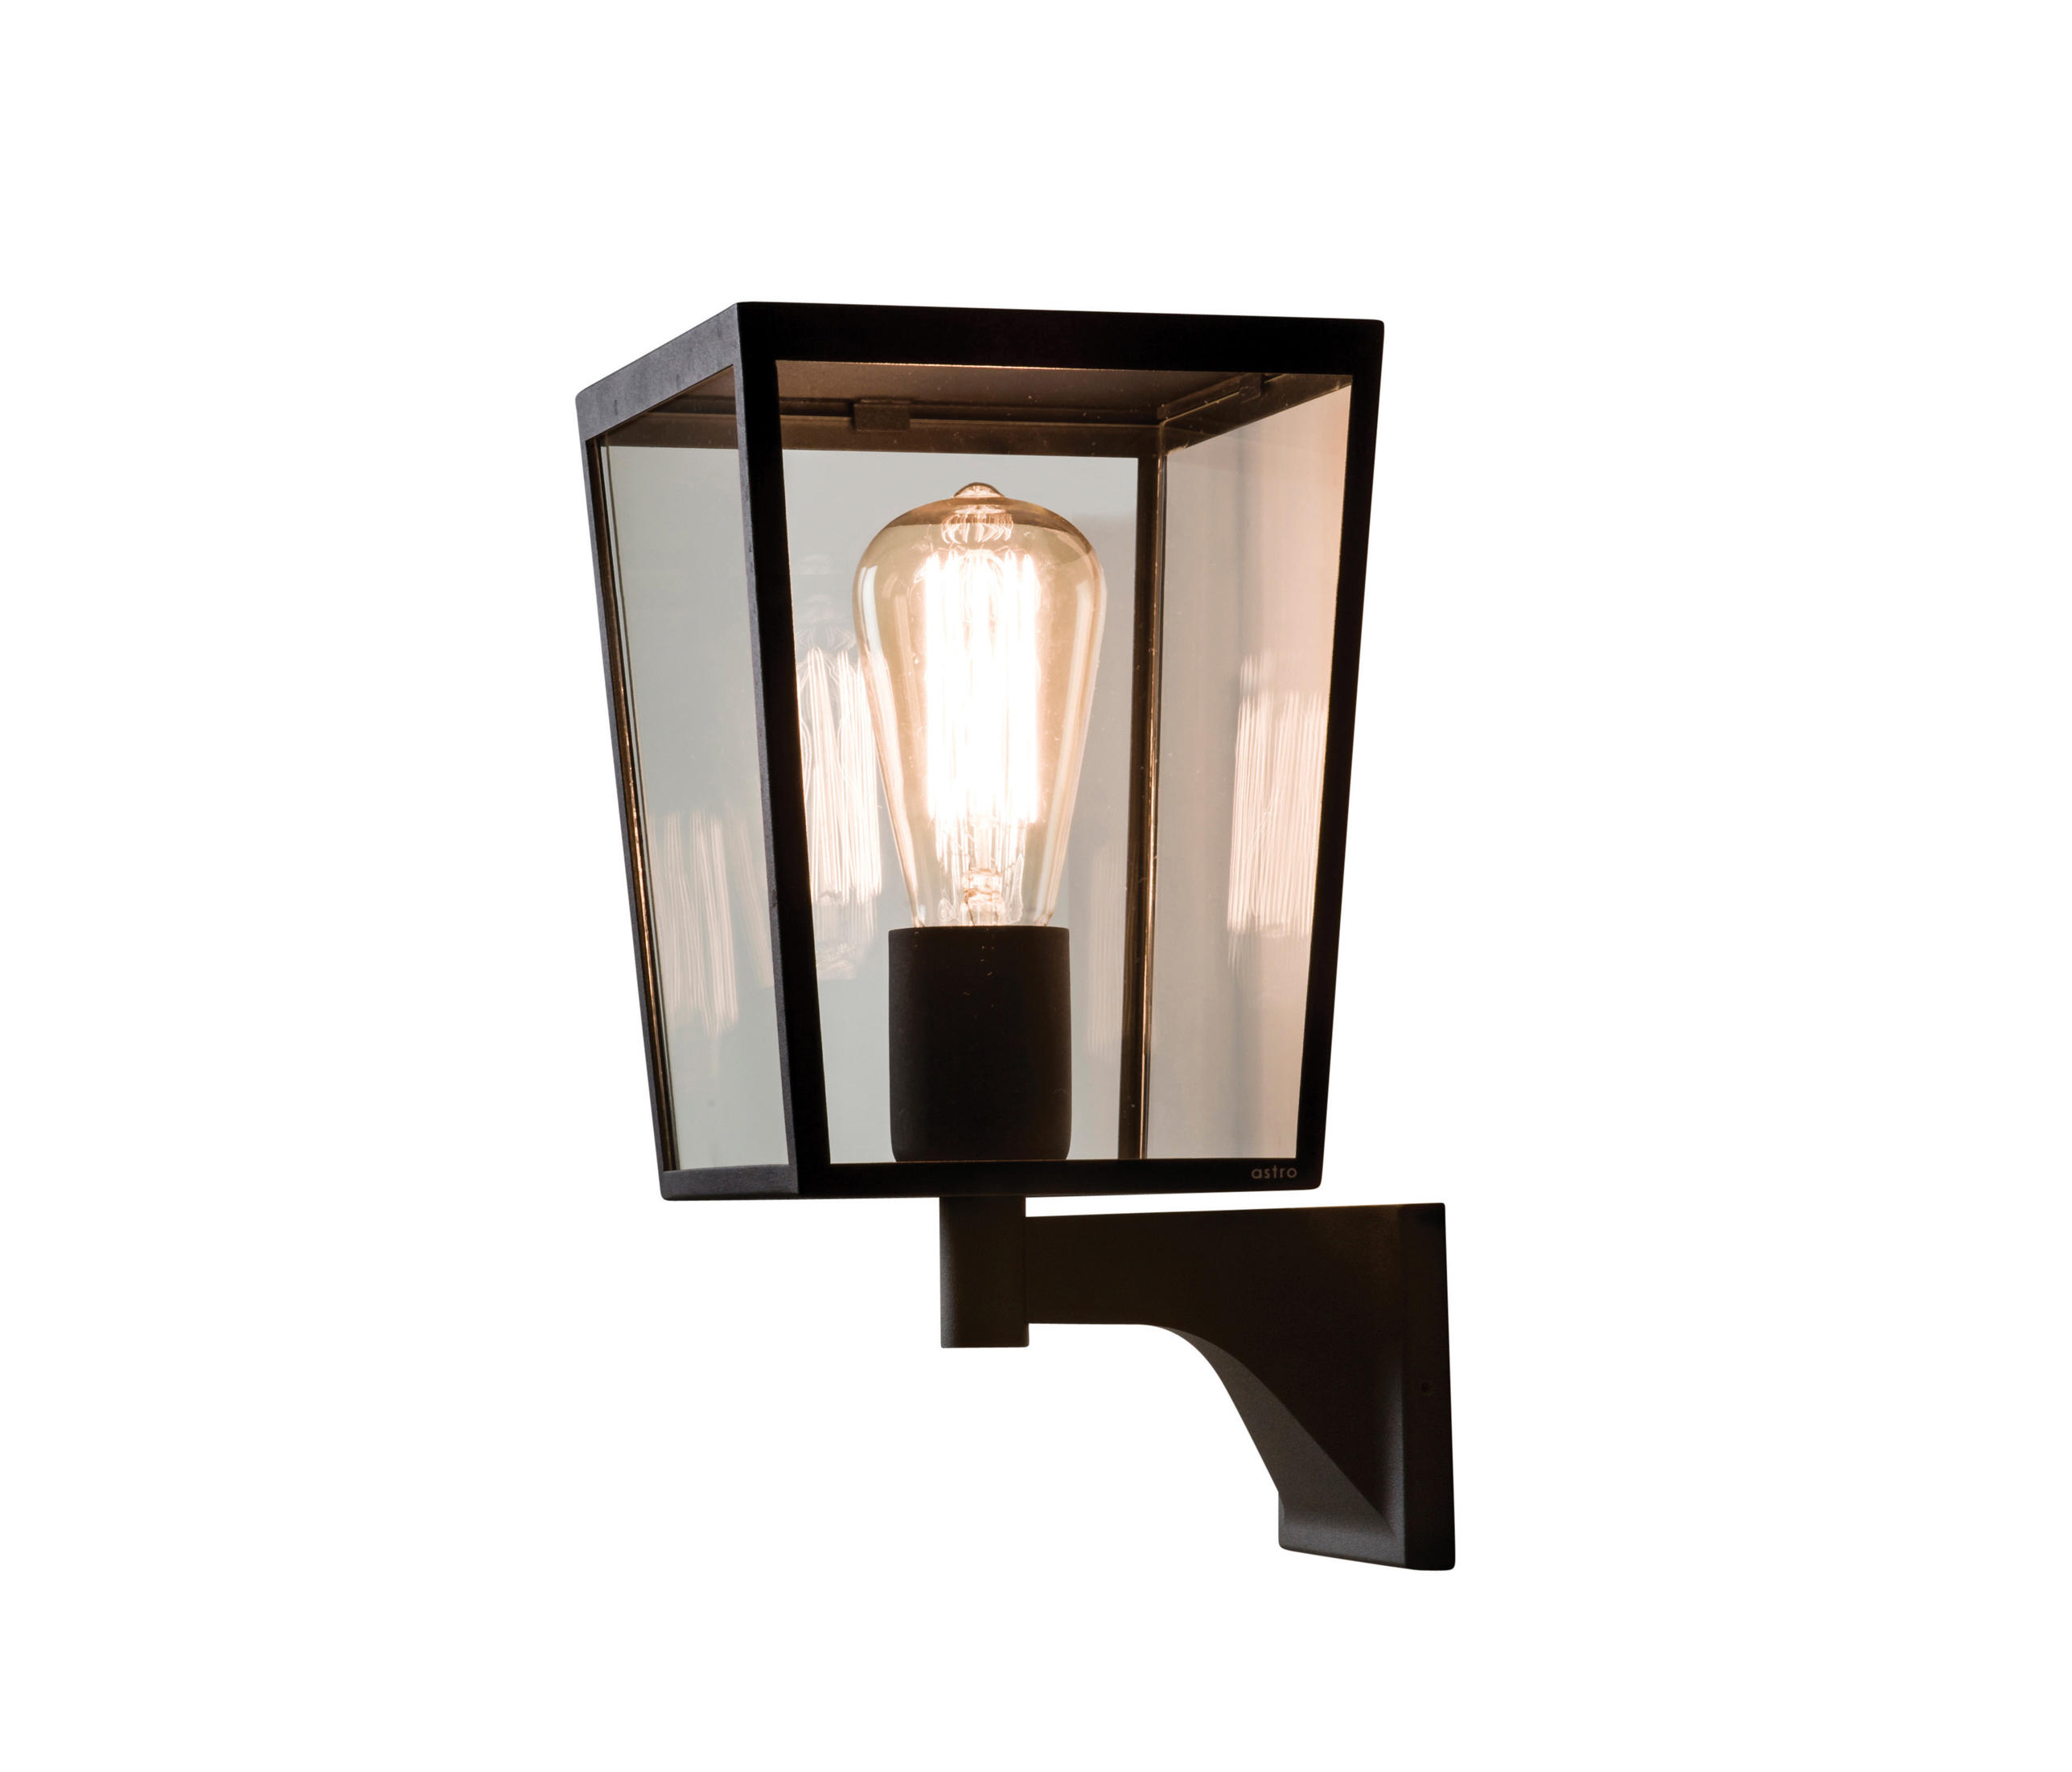 farringdon general lighting from astro lighting architonic. Black Bedroom Furniture Sets. Home Design Ideas